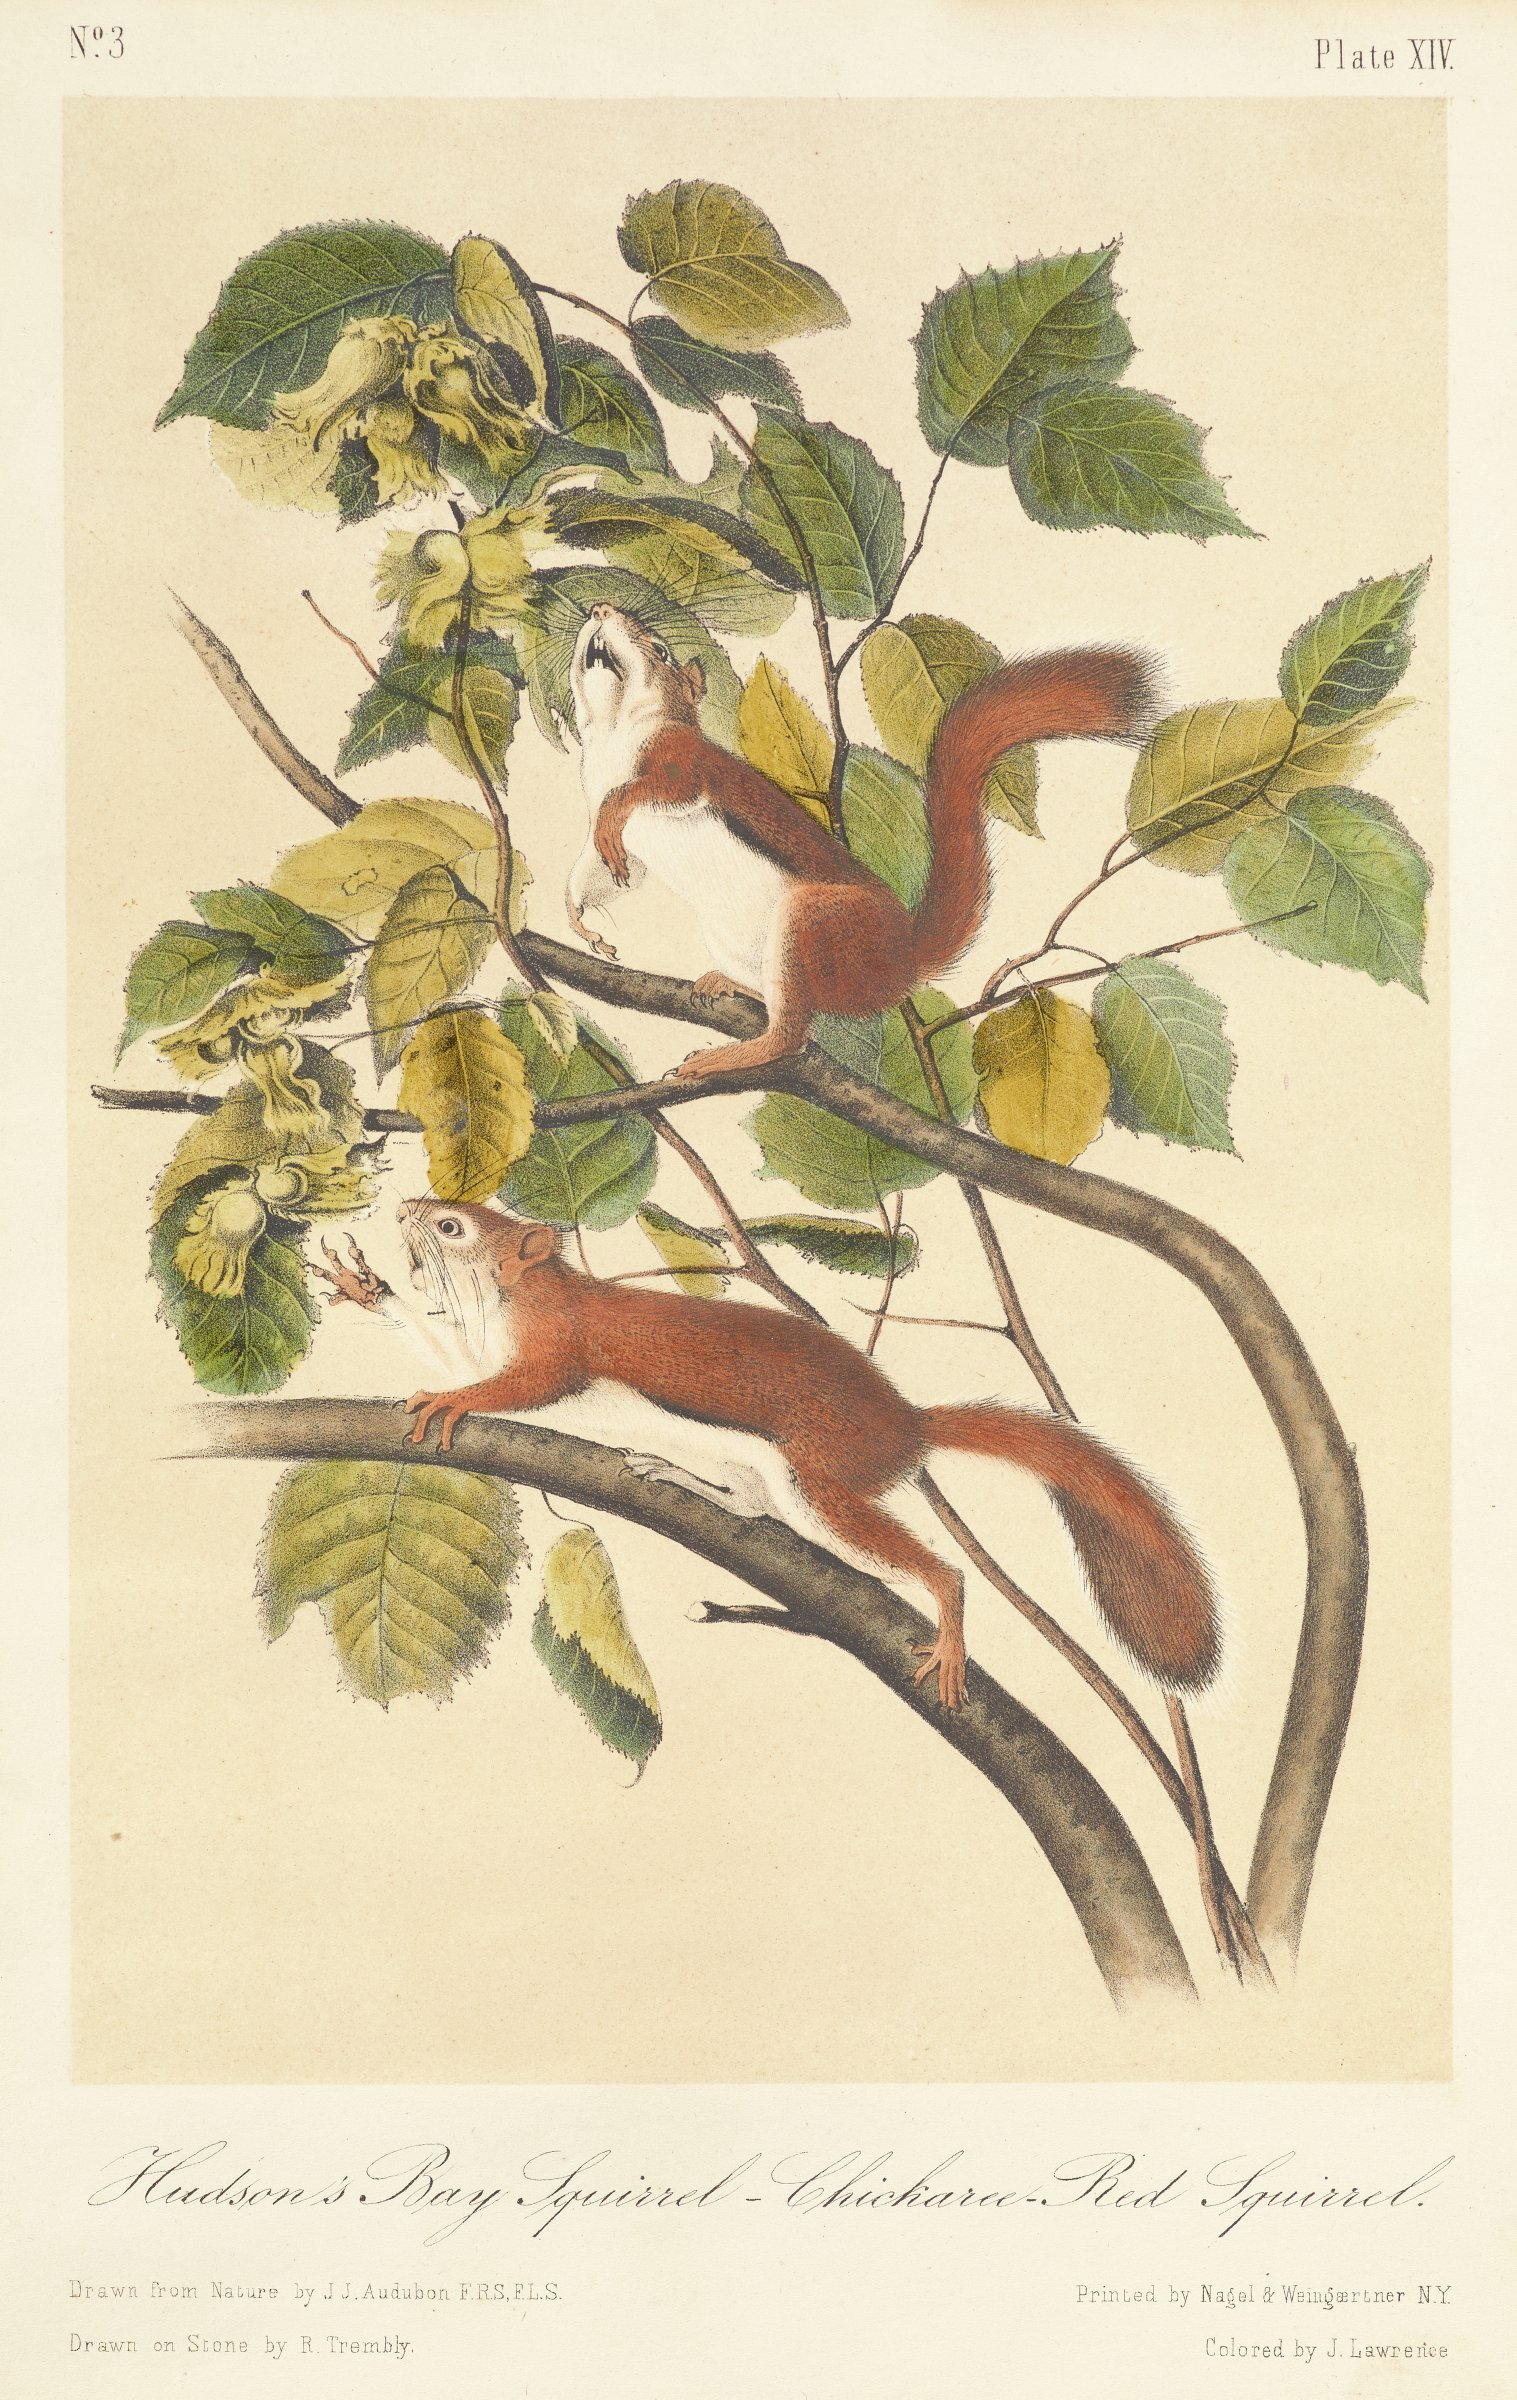 Two squirrels are depicted within a tree that produces serrated edge leaves and yellowish green blossoms. The lower squirrel reaches out to grab one of the blossoms.